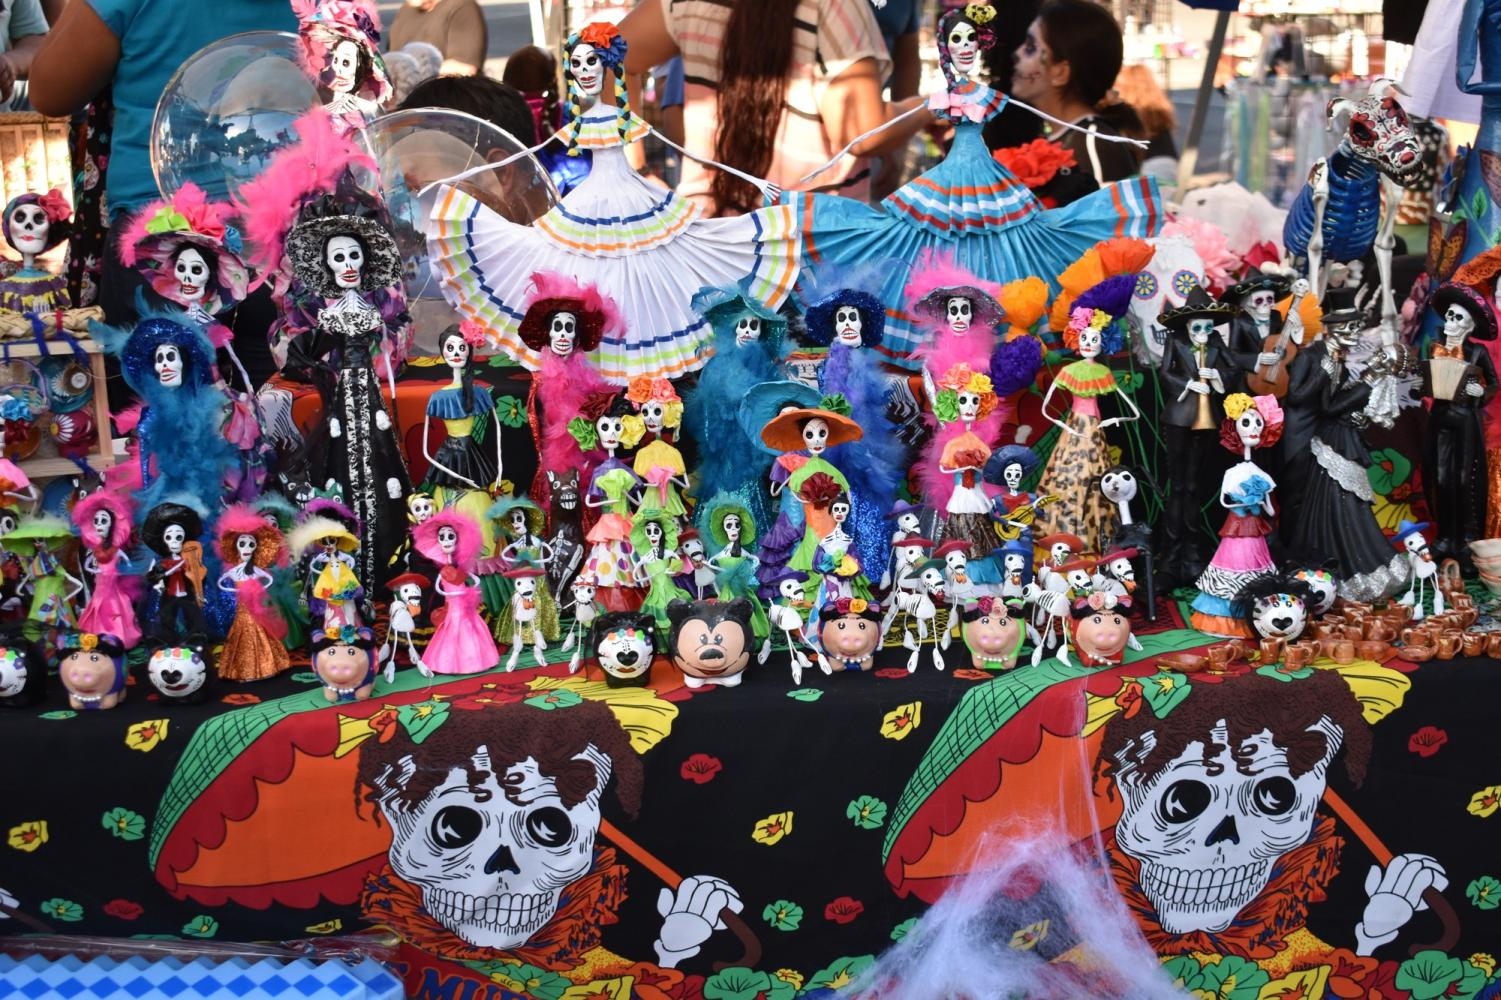 Display of Day of the Dead Art being sold. The bright colors used are common during the Day of the Dead celebration.